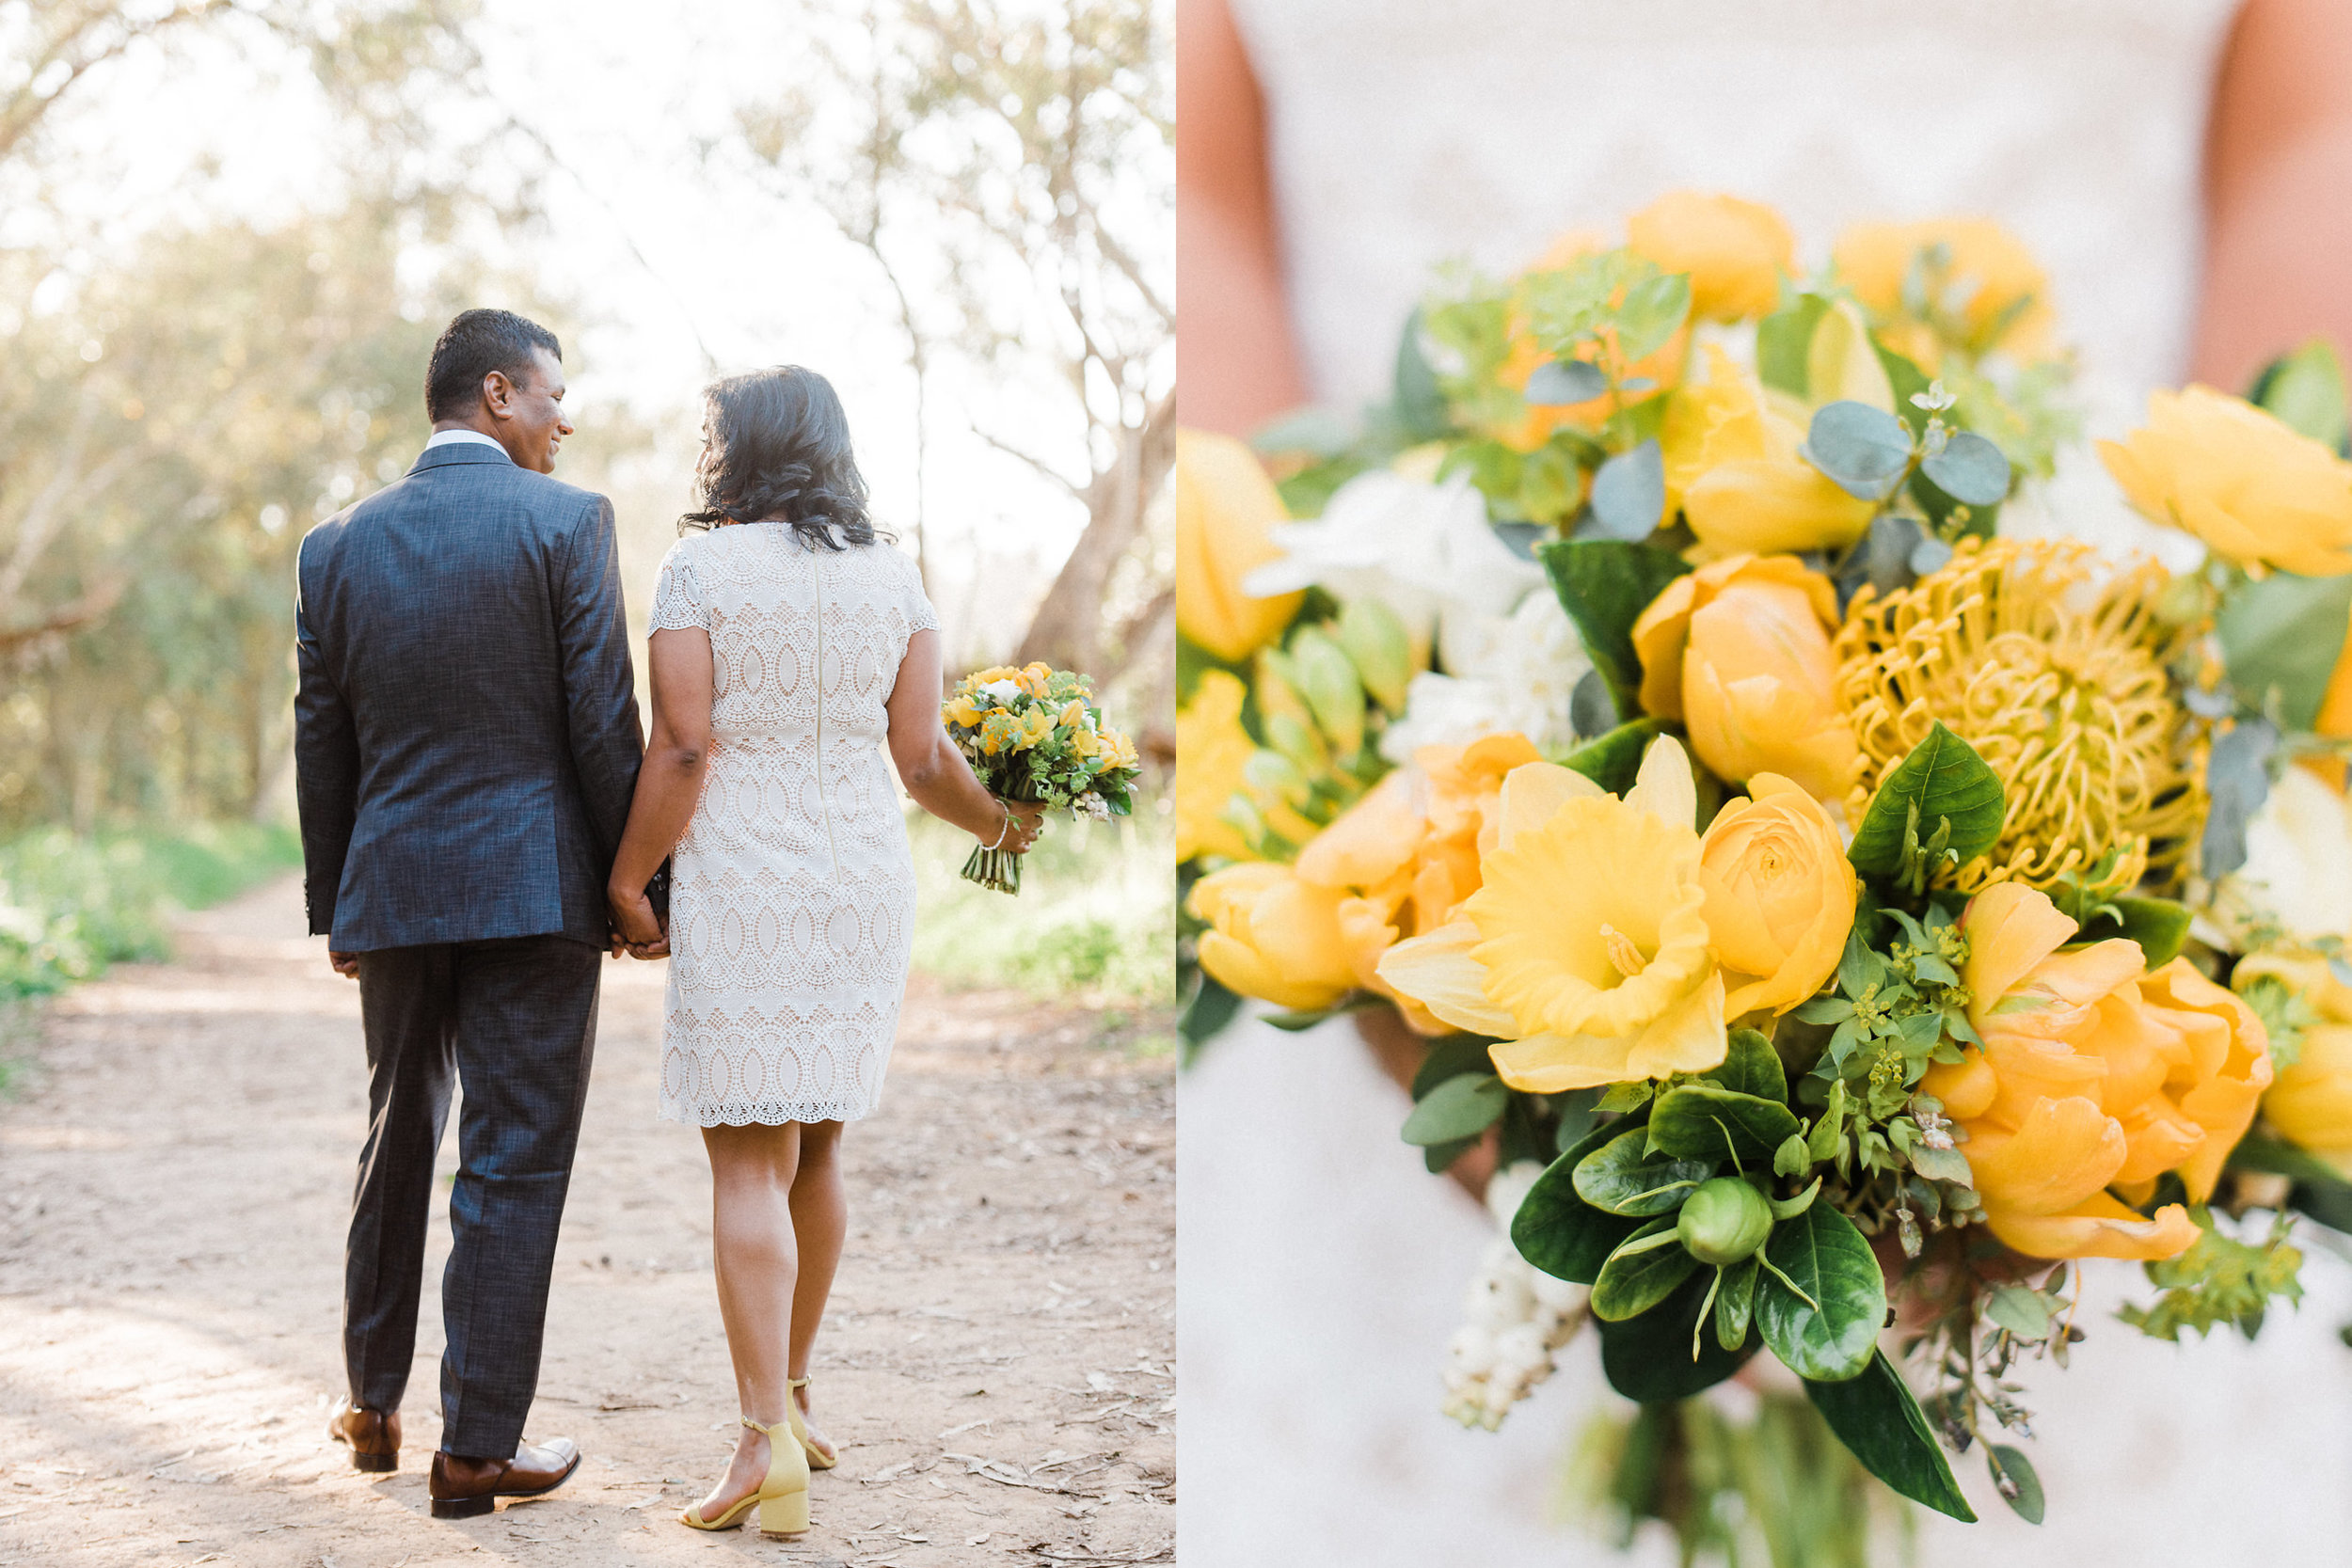 santa-barbara-elopement-elope-wedding-planner-planning-coordinator-day-of-ellwood-bluffs-ocean-view-yellow (5).jpg